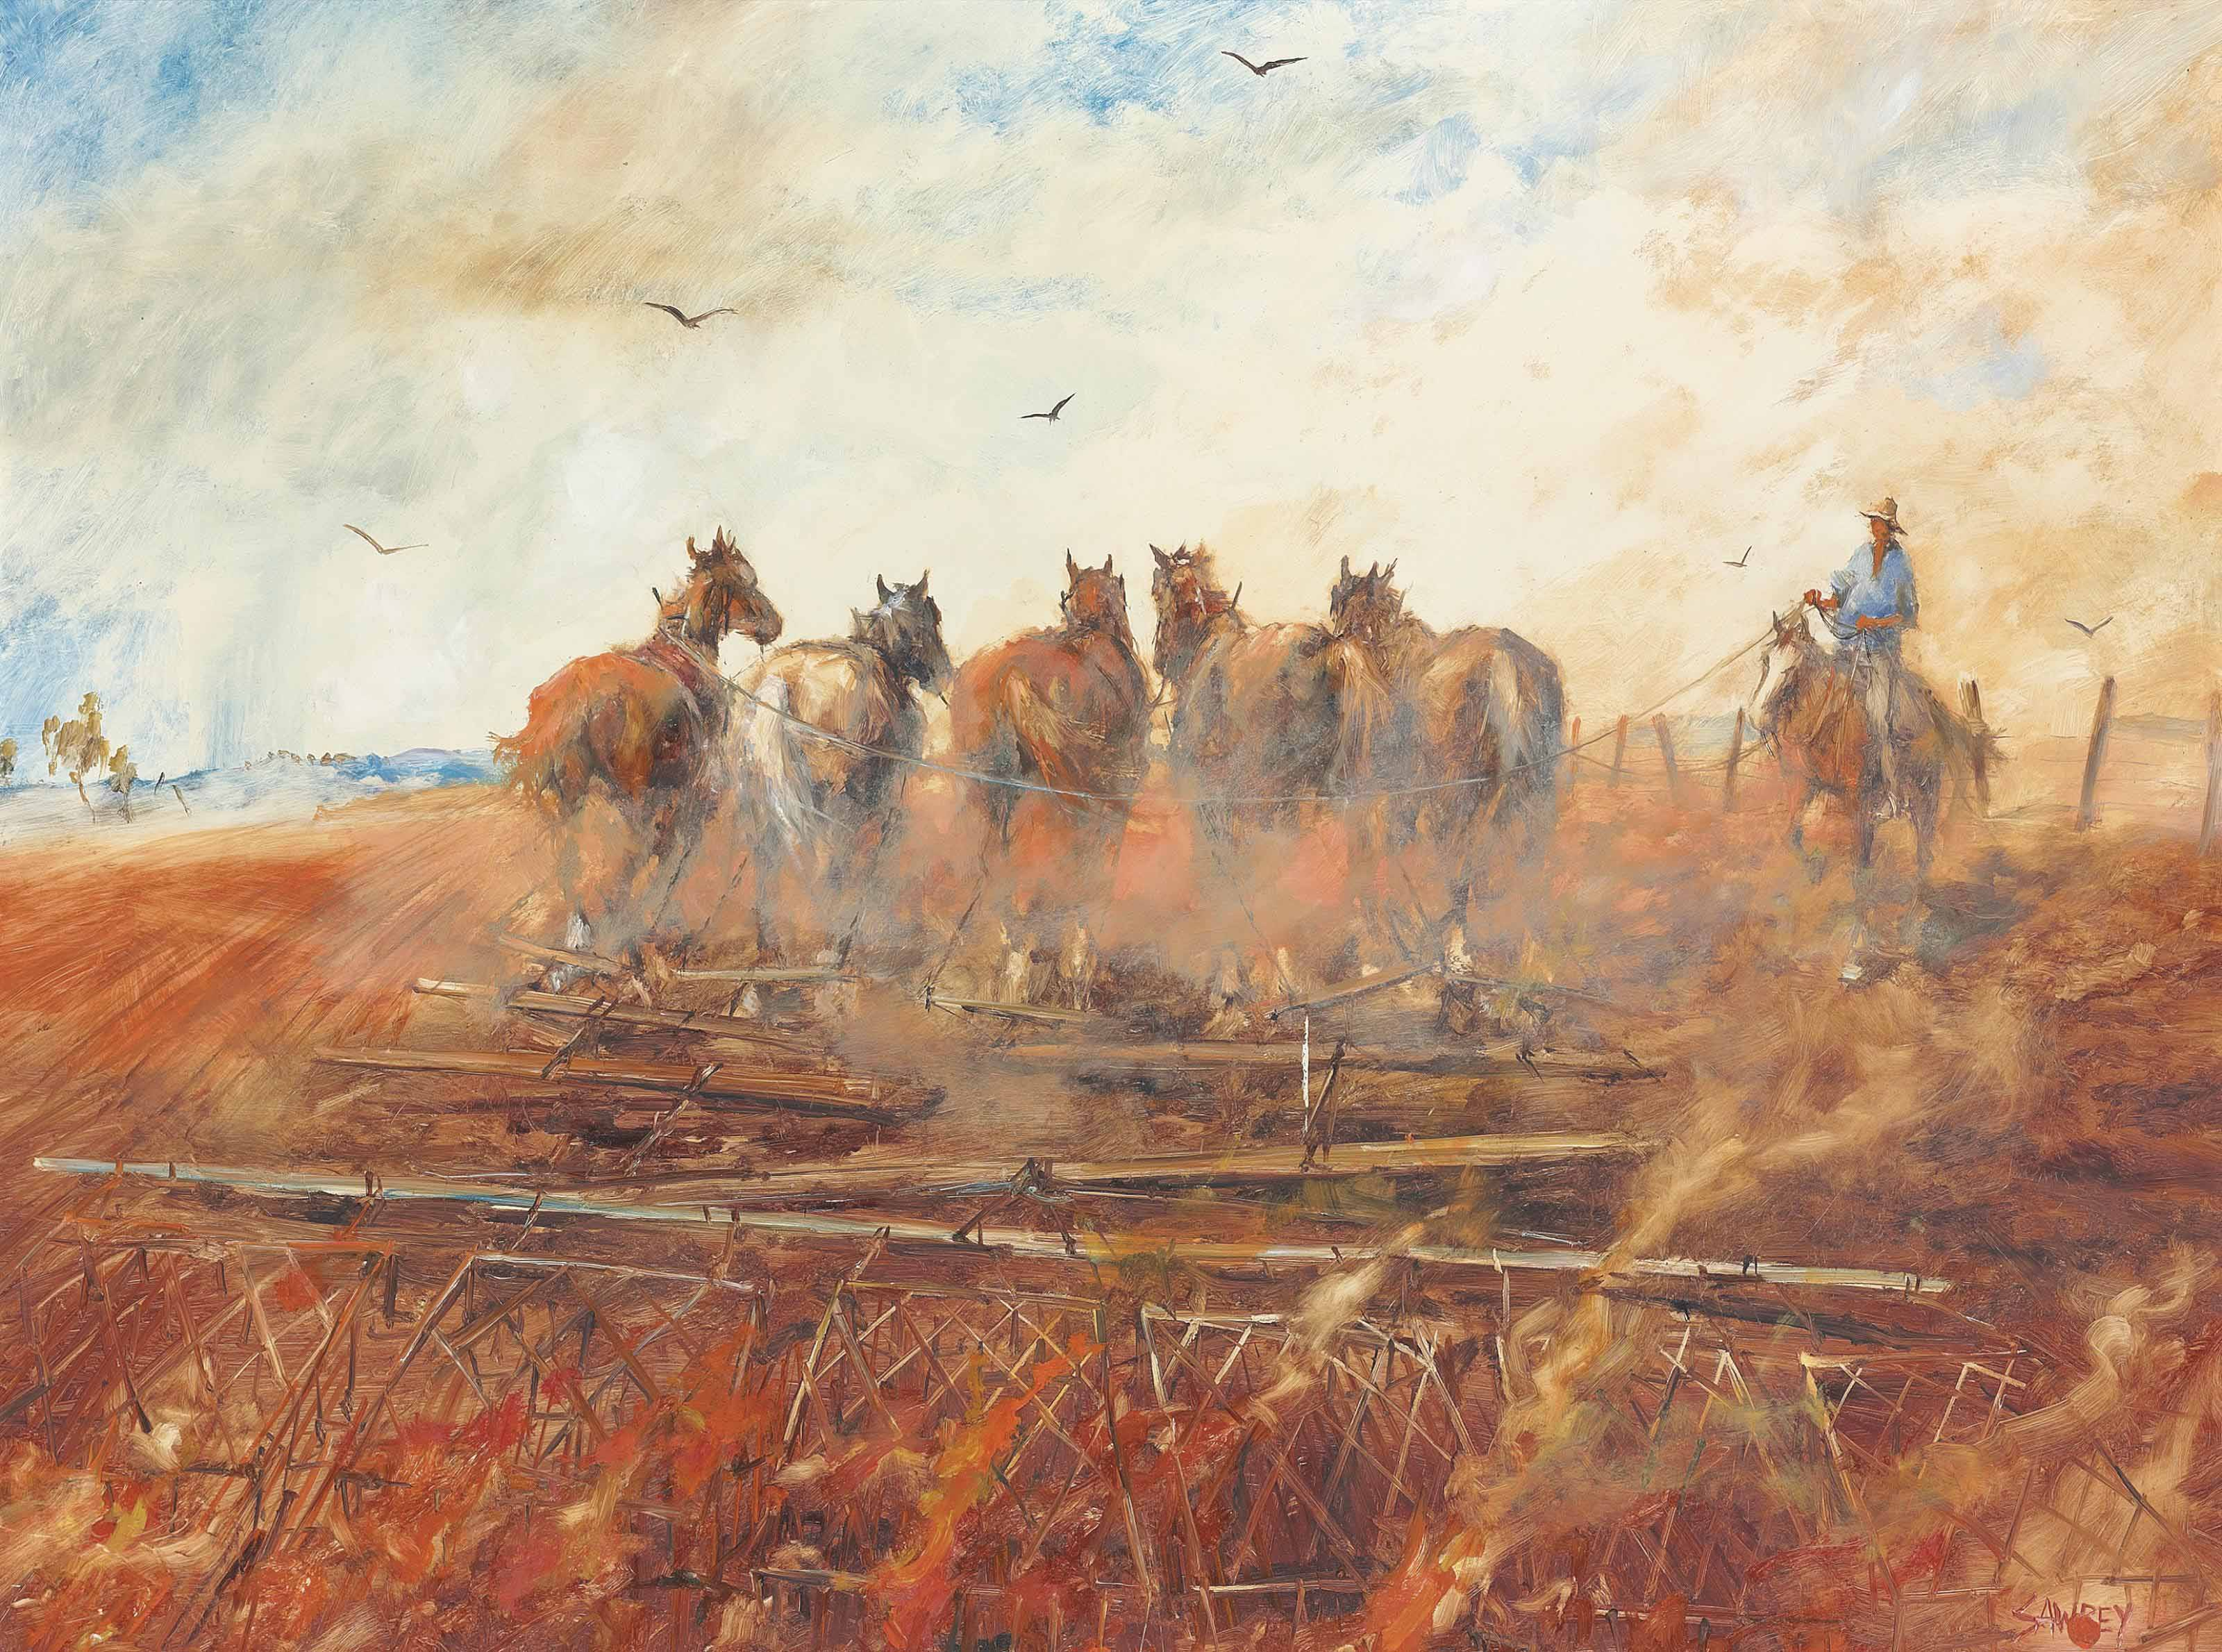 The Fire Harrowing Team, Queensland